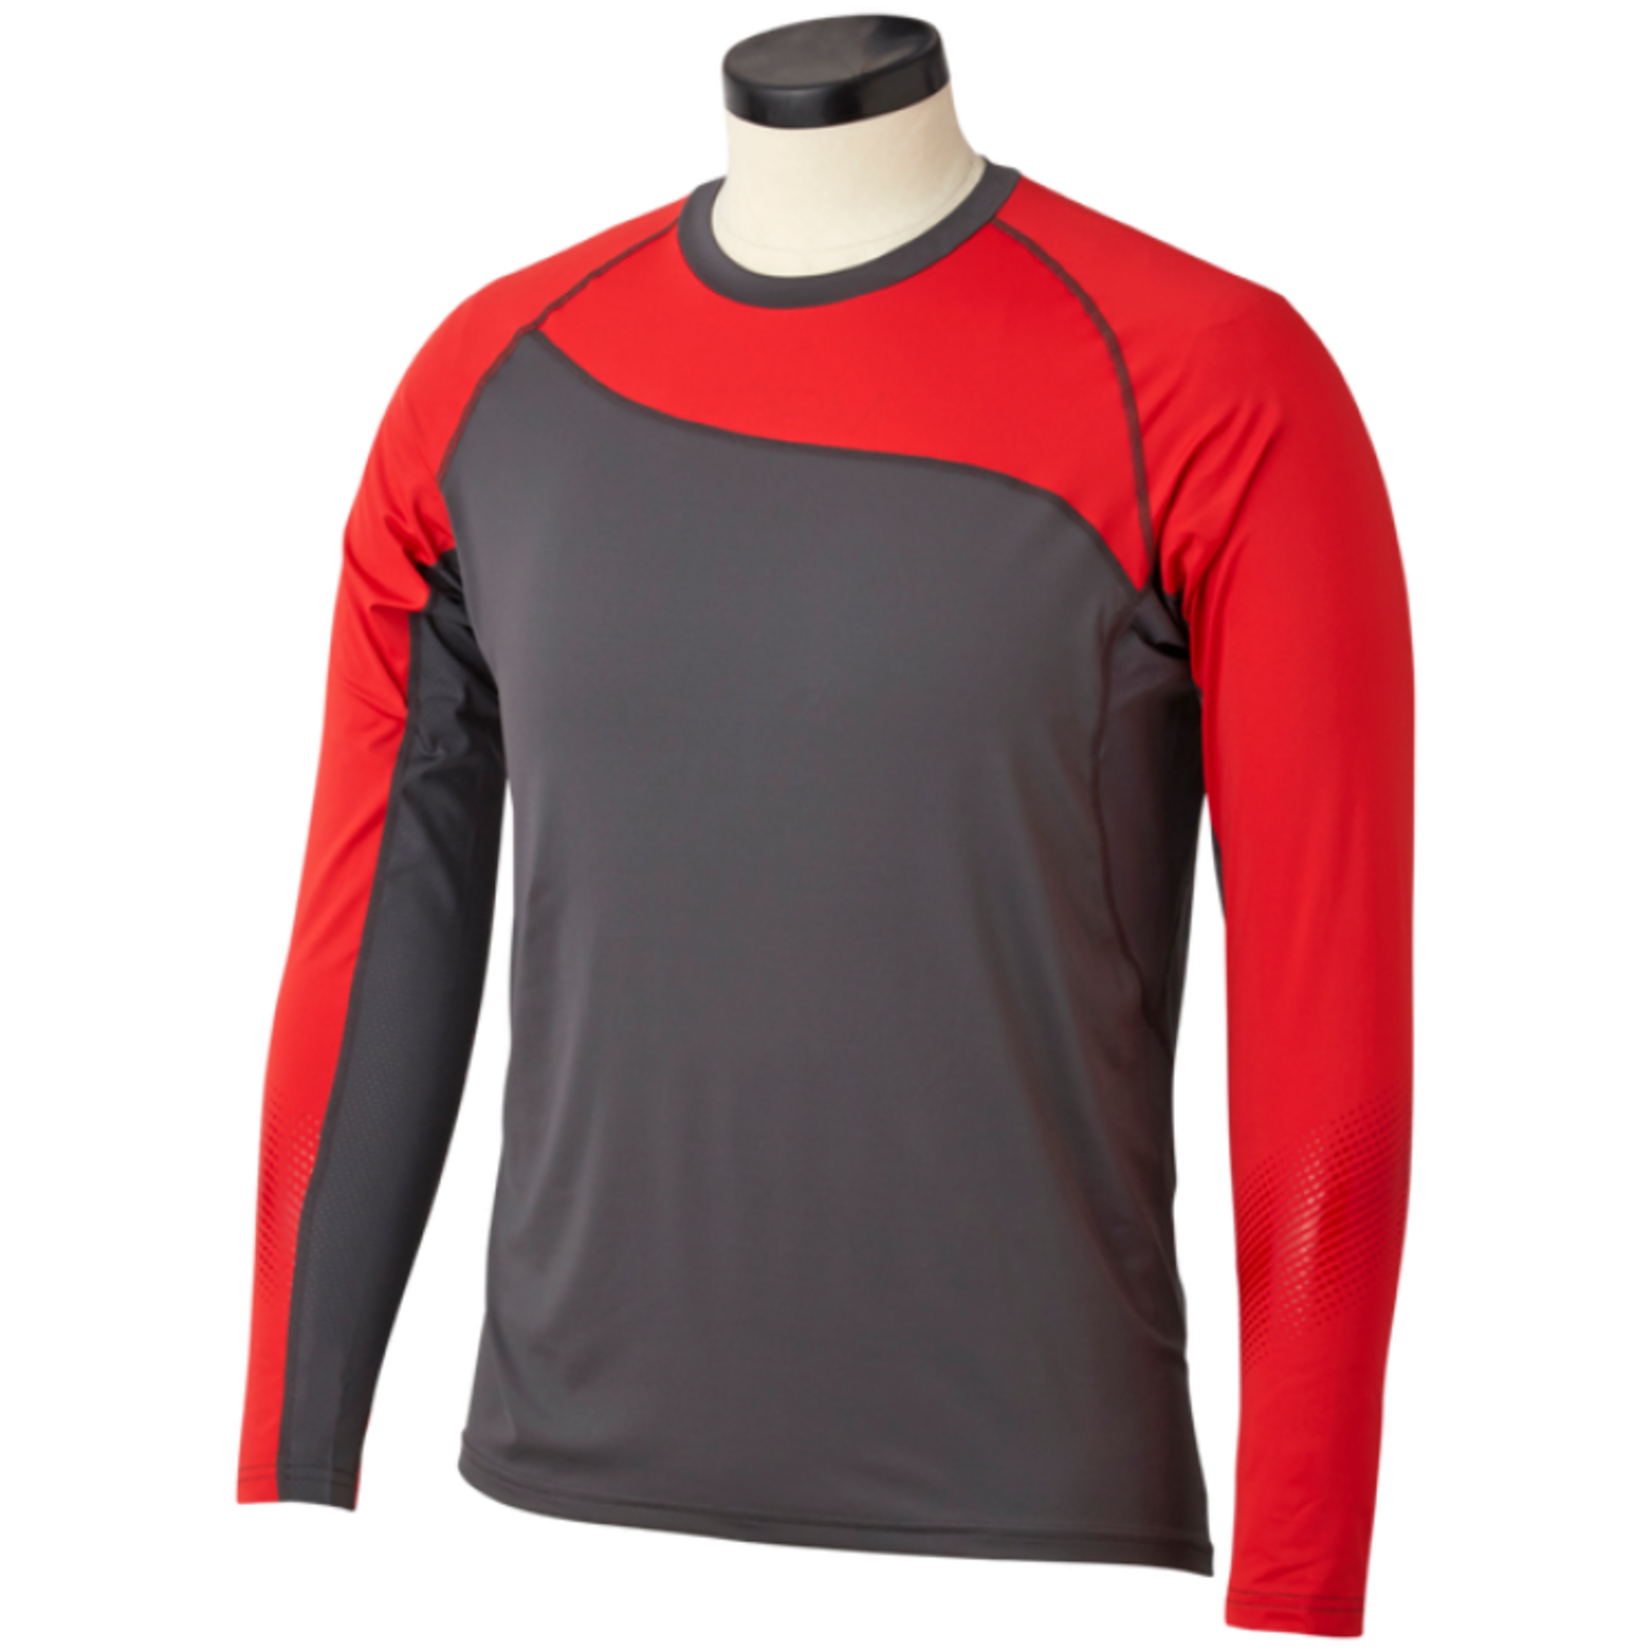 Bauer Bauer Long Sleeve Shirt, Pro Baselayer Top, Youth